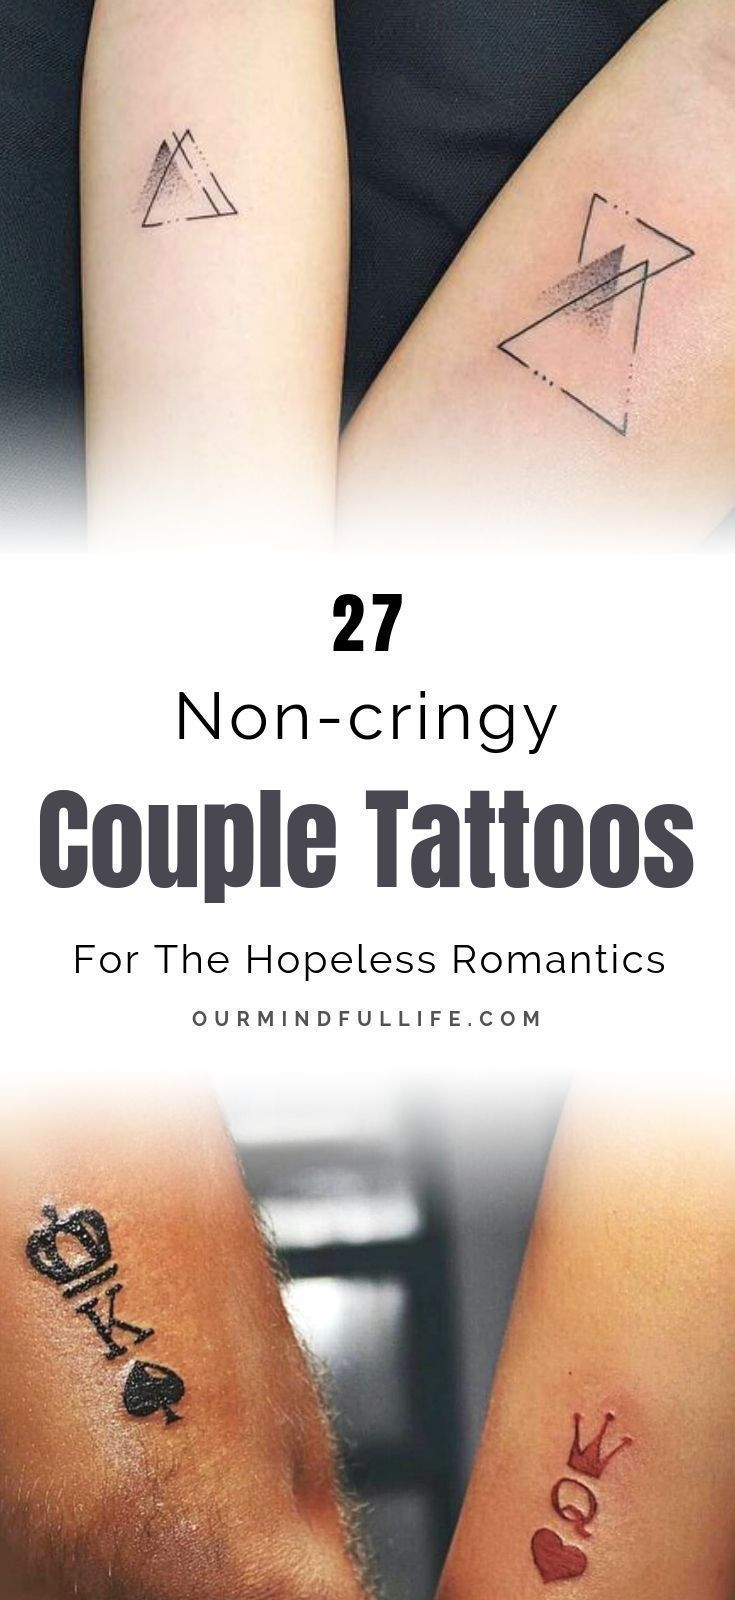 89 useful couple tattoo ideas for the hopeless romantics for hopeless   89 meaningful couple of tattoo ideas for the hopeless romantics